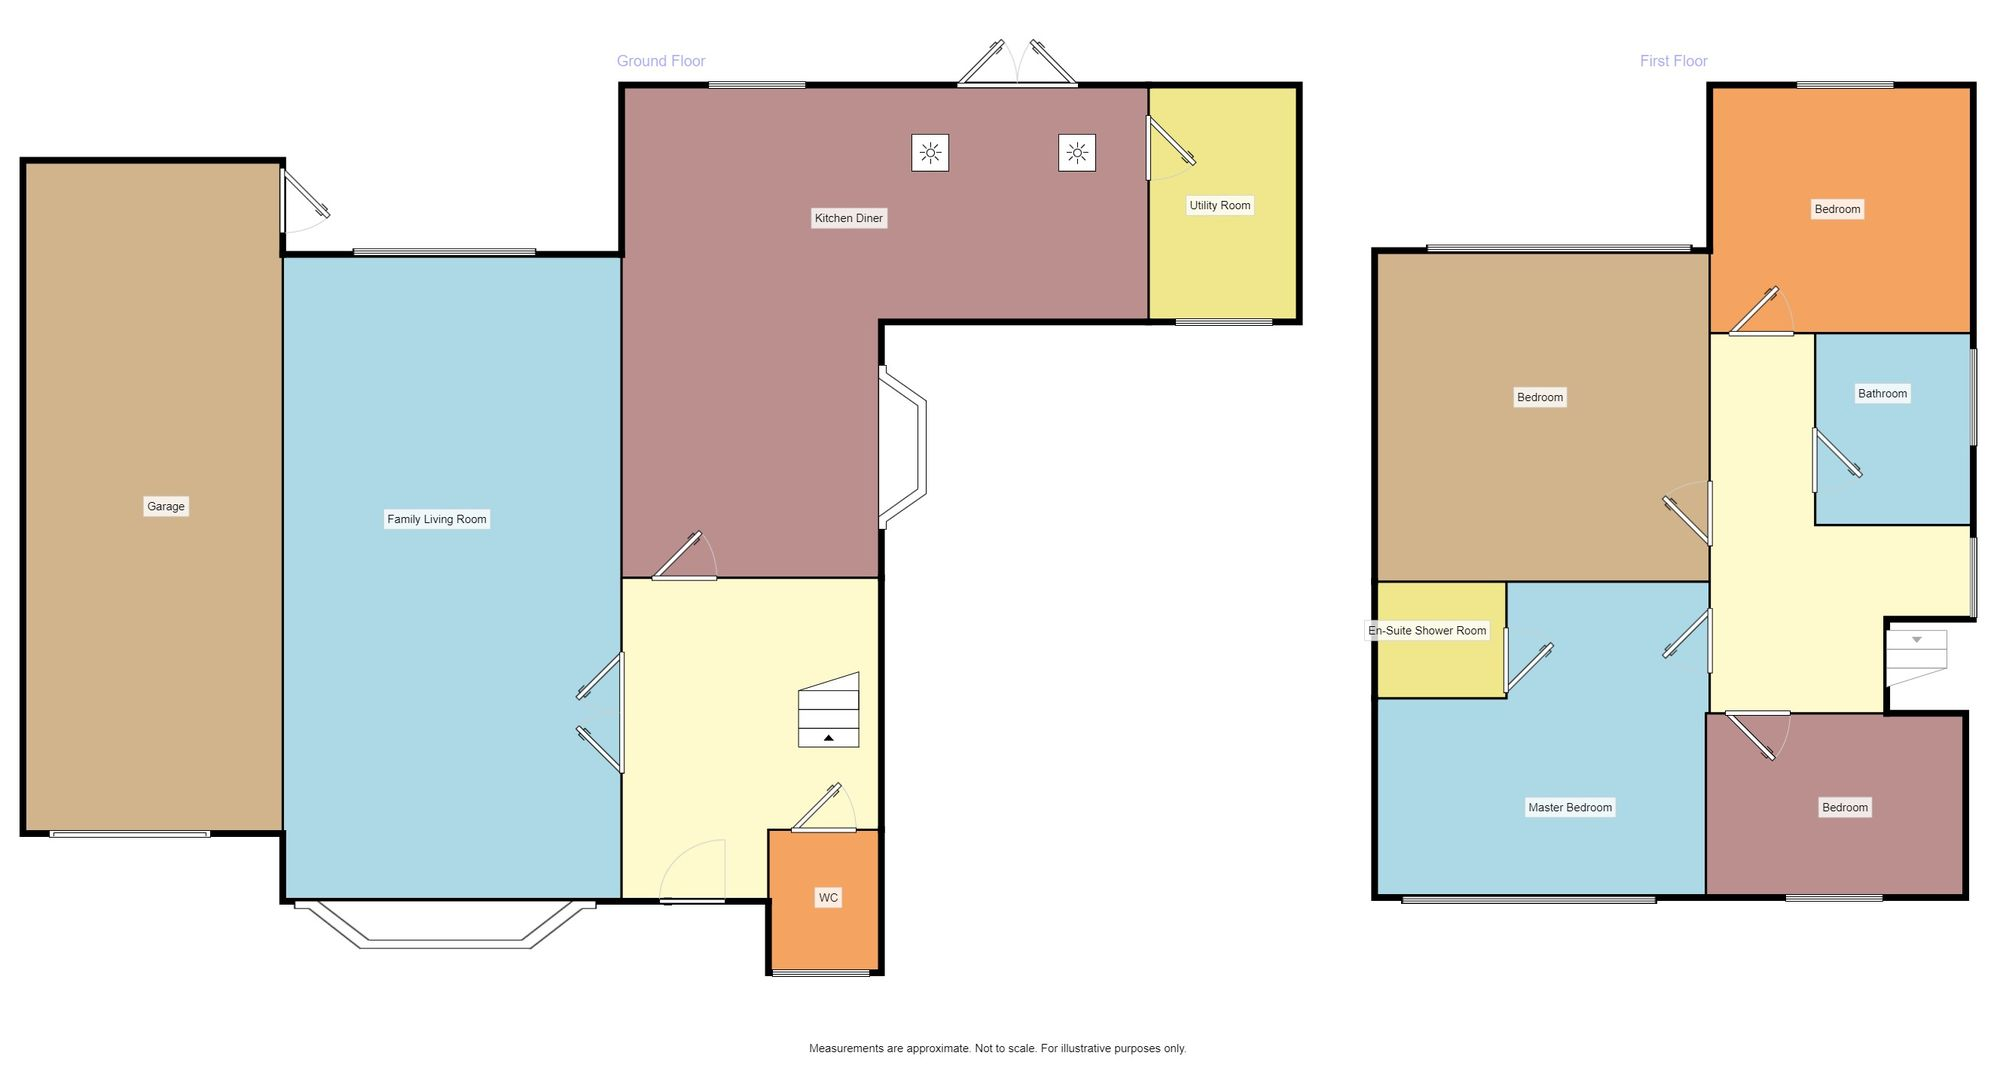 4 bedroom houses for sale in Nottingham - Your Move